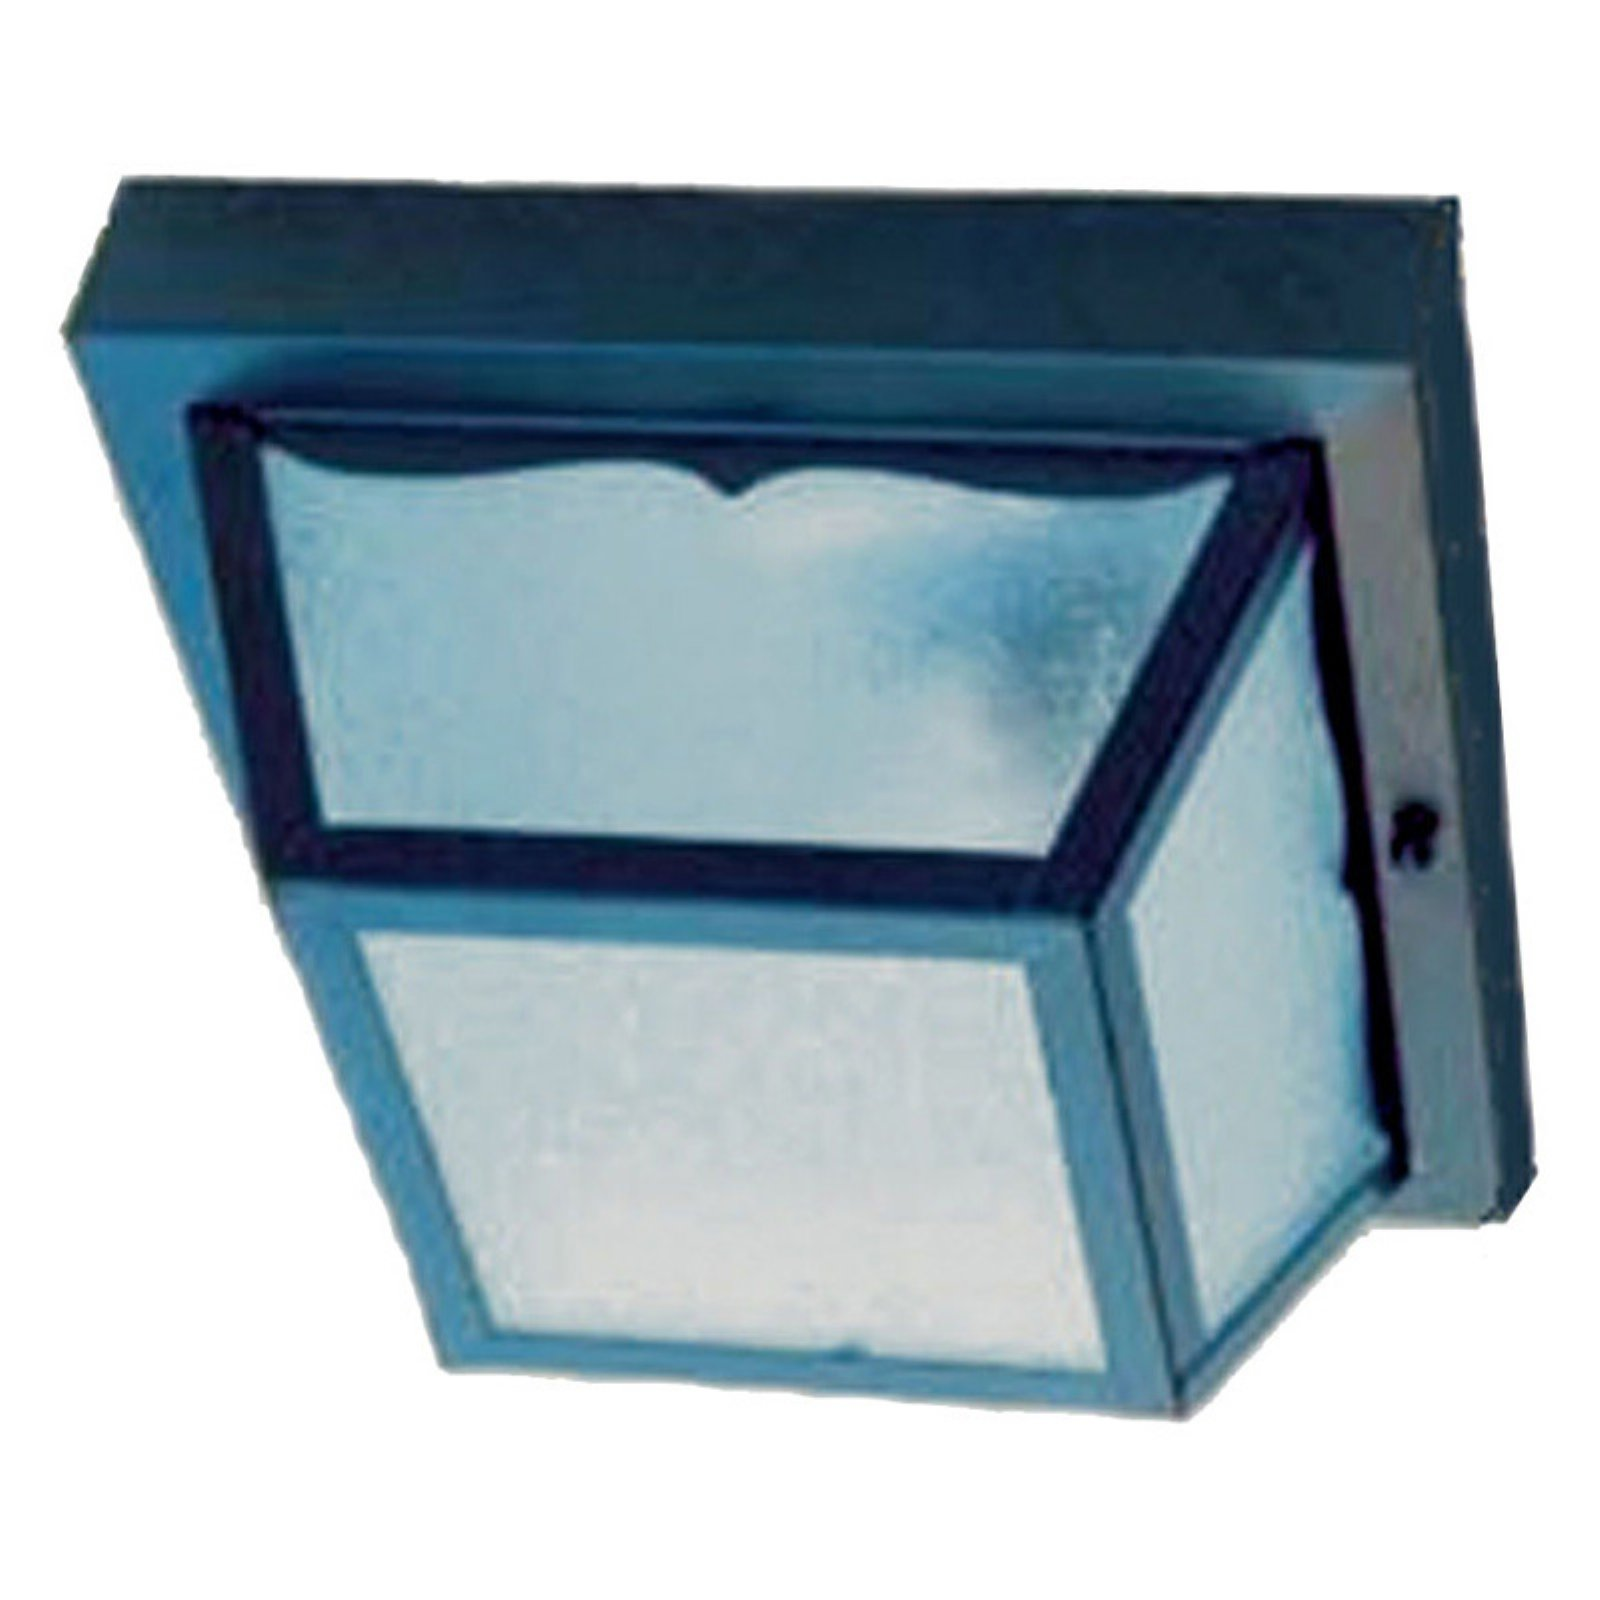 Acclaim Lighting Builders Choice Outdoor Ceiling Mount Light Fixture by Acclaim Lighting